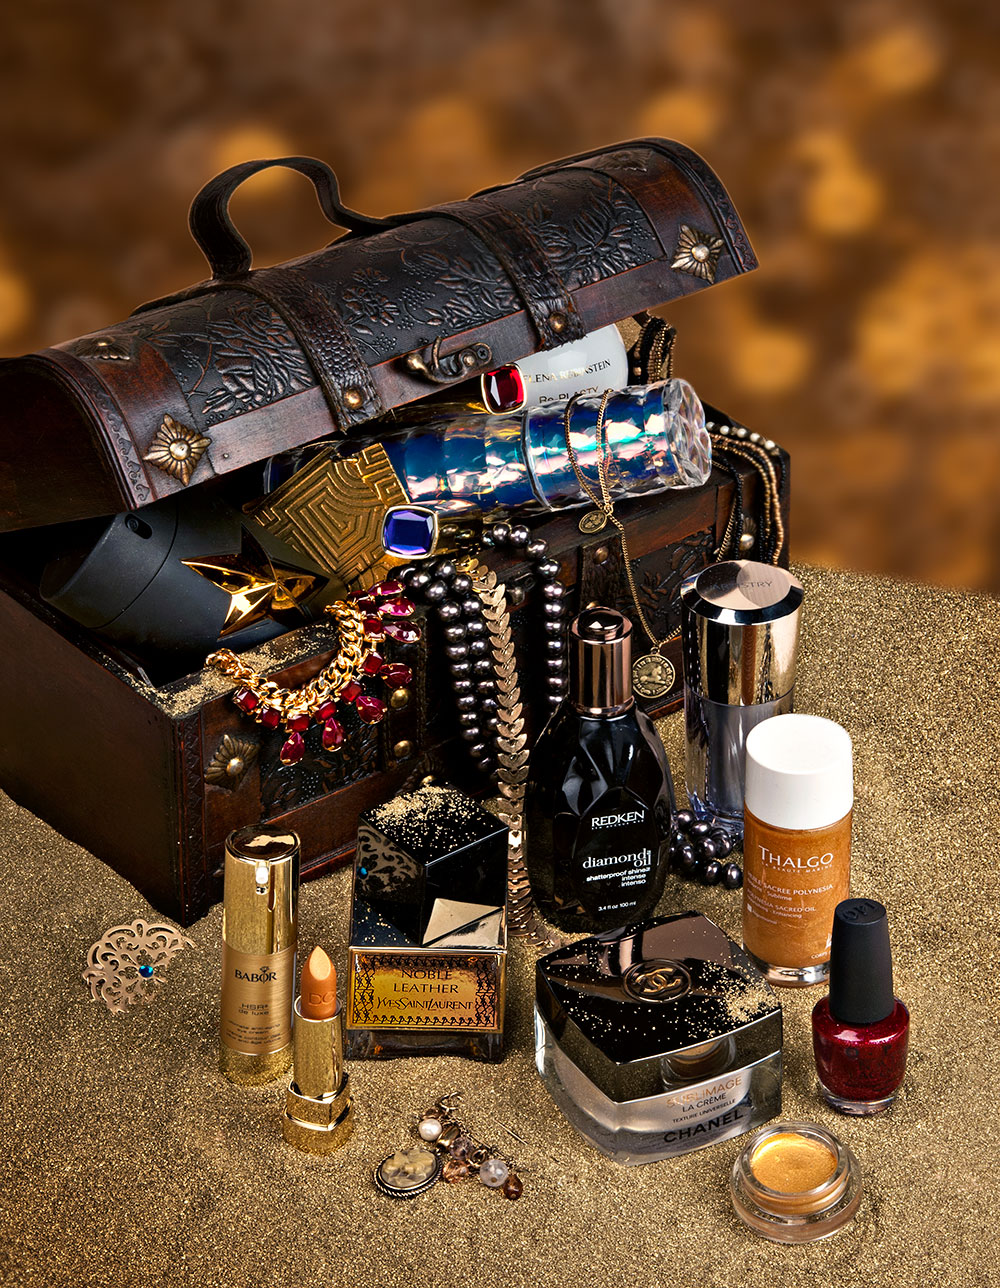 Precious stones and metals in cosmetics